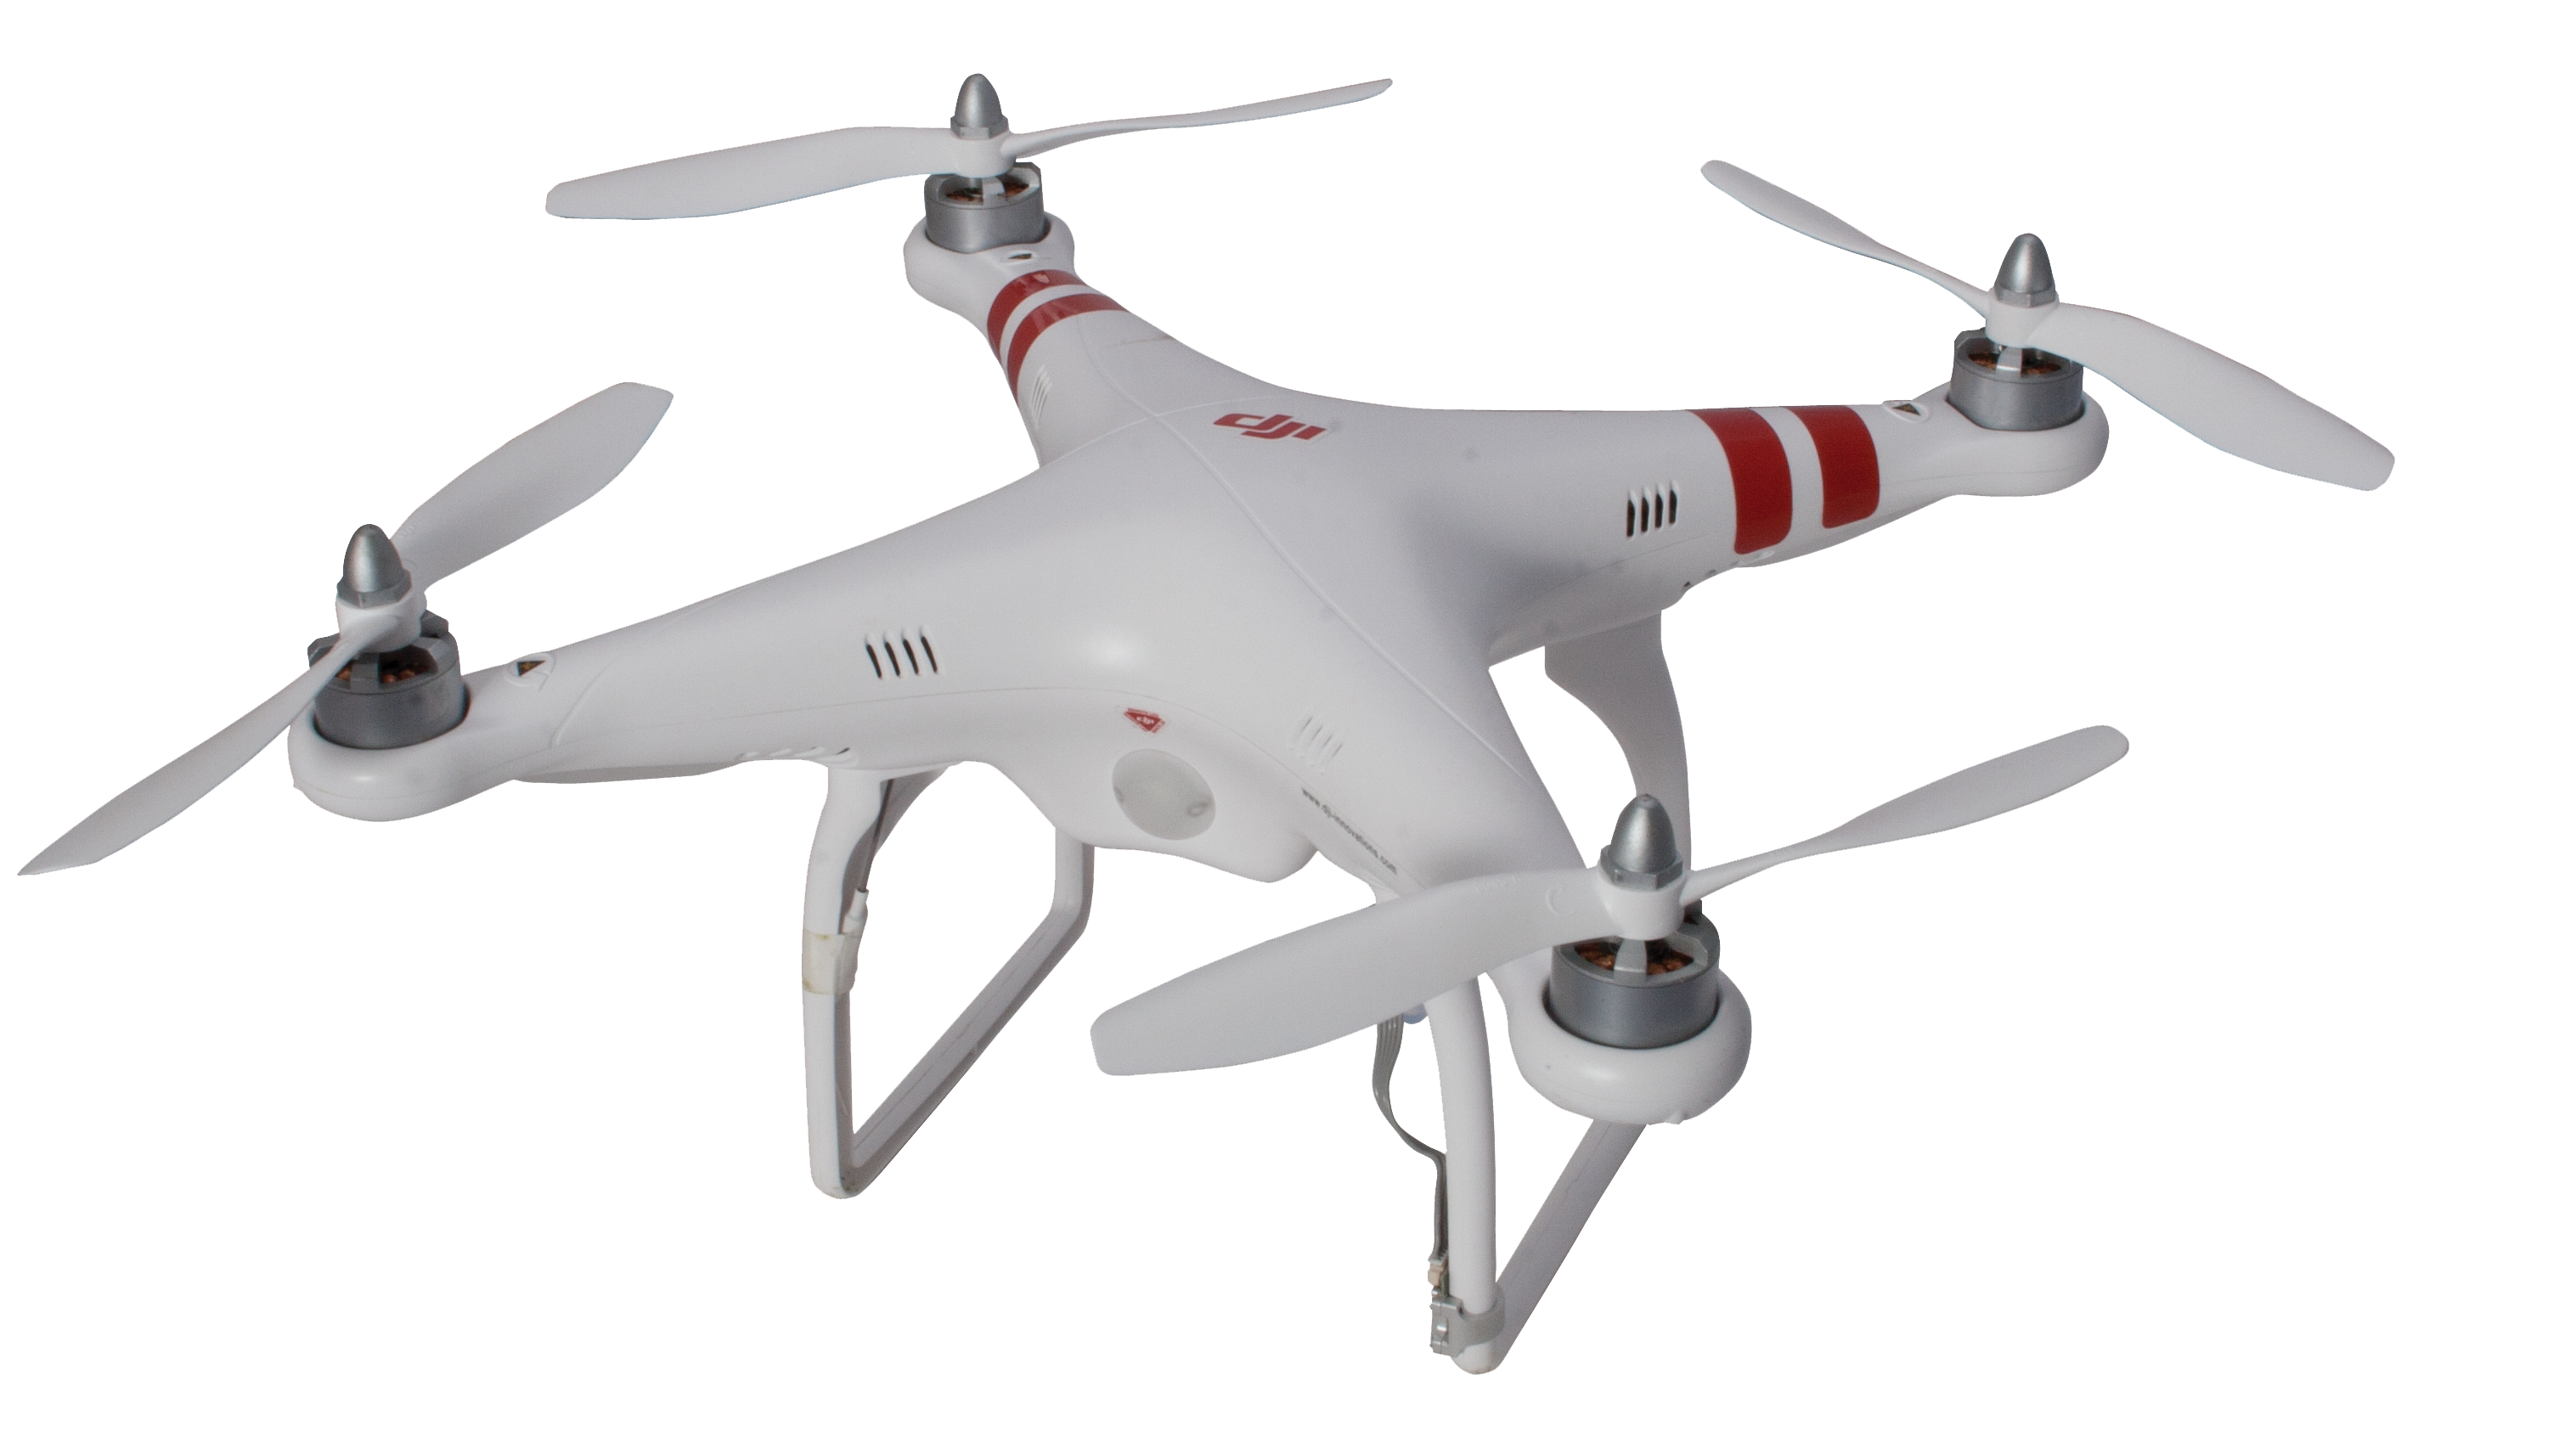 Drone File PNG Image